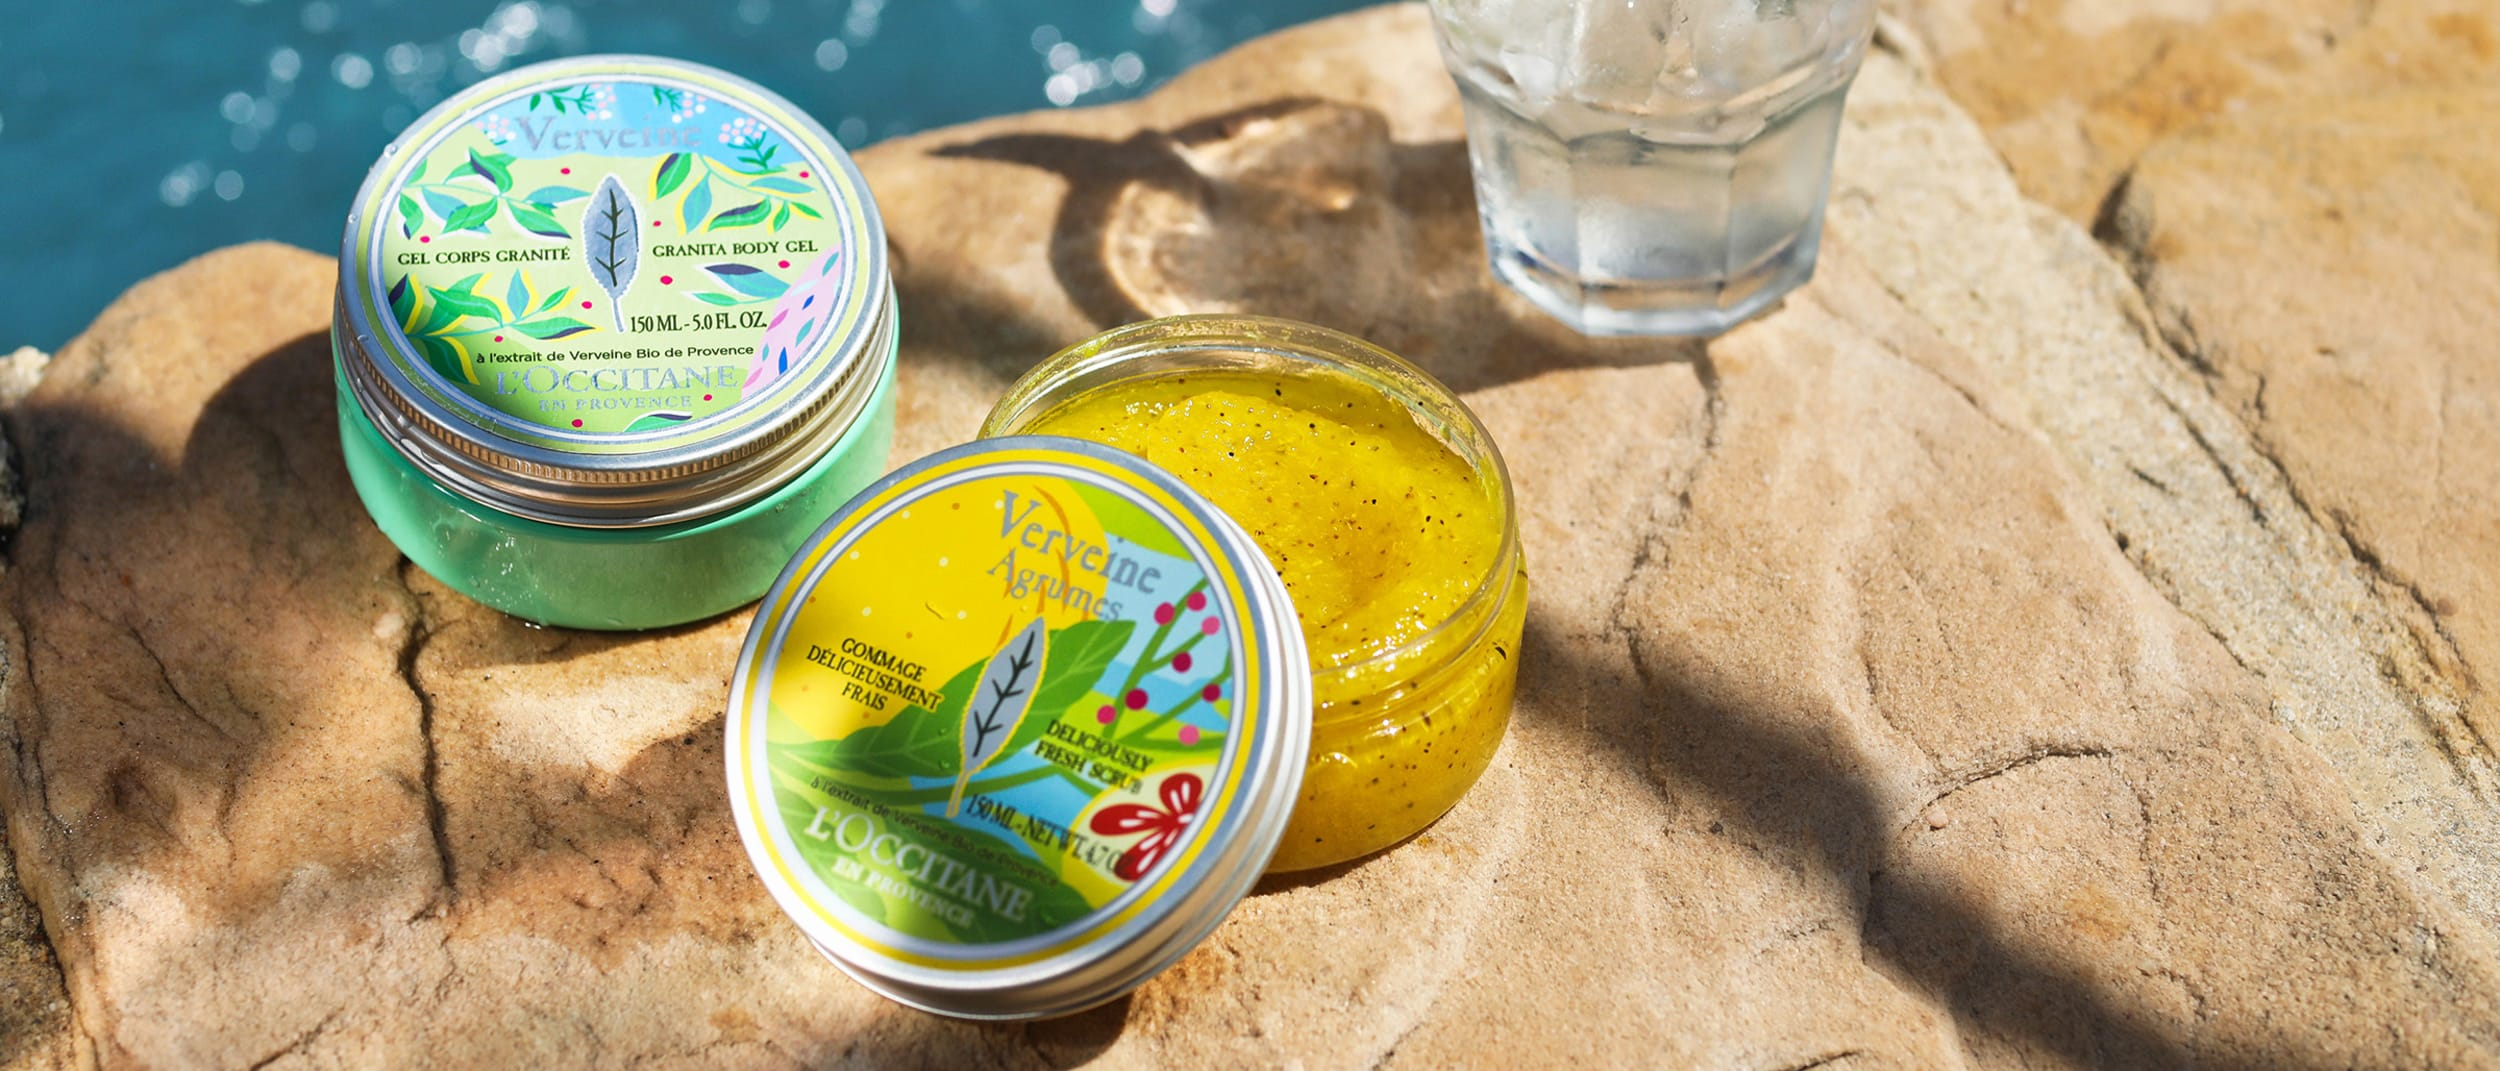 L'OCCITANE: Limited Edition Verbena Collections